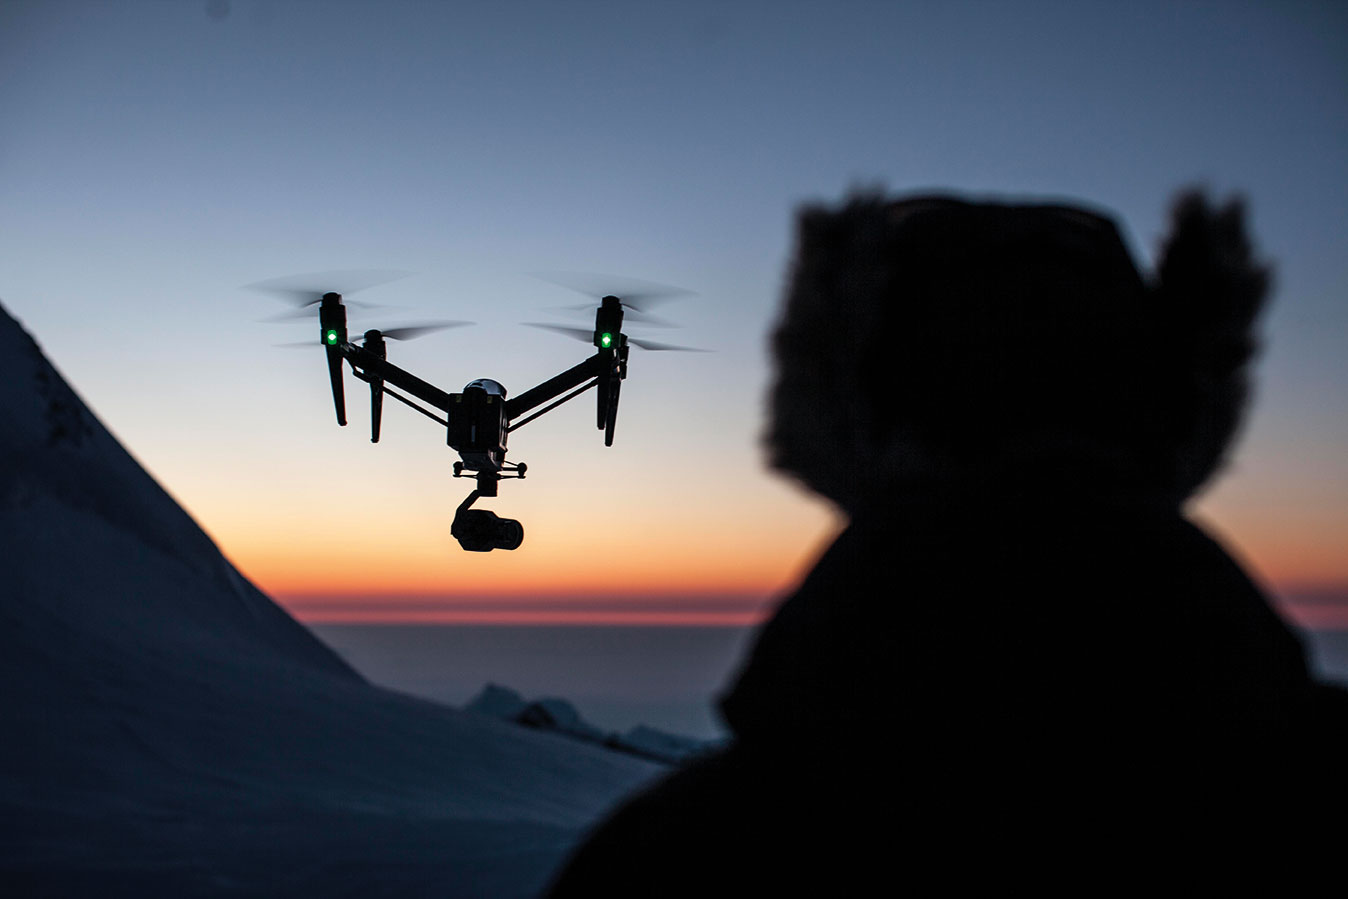 Working at over 4000m and -30°C is a real test of any drone – and the human operator.